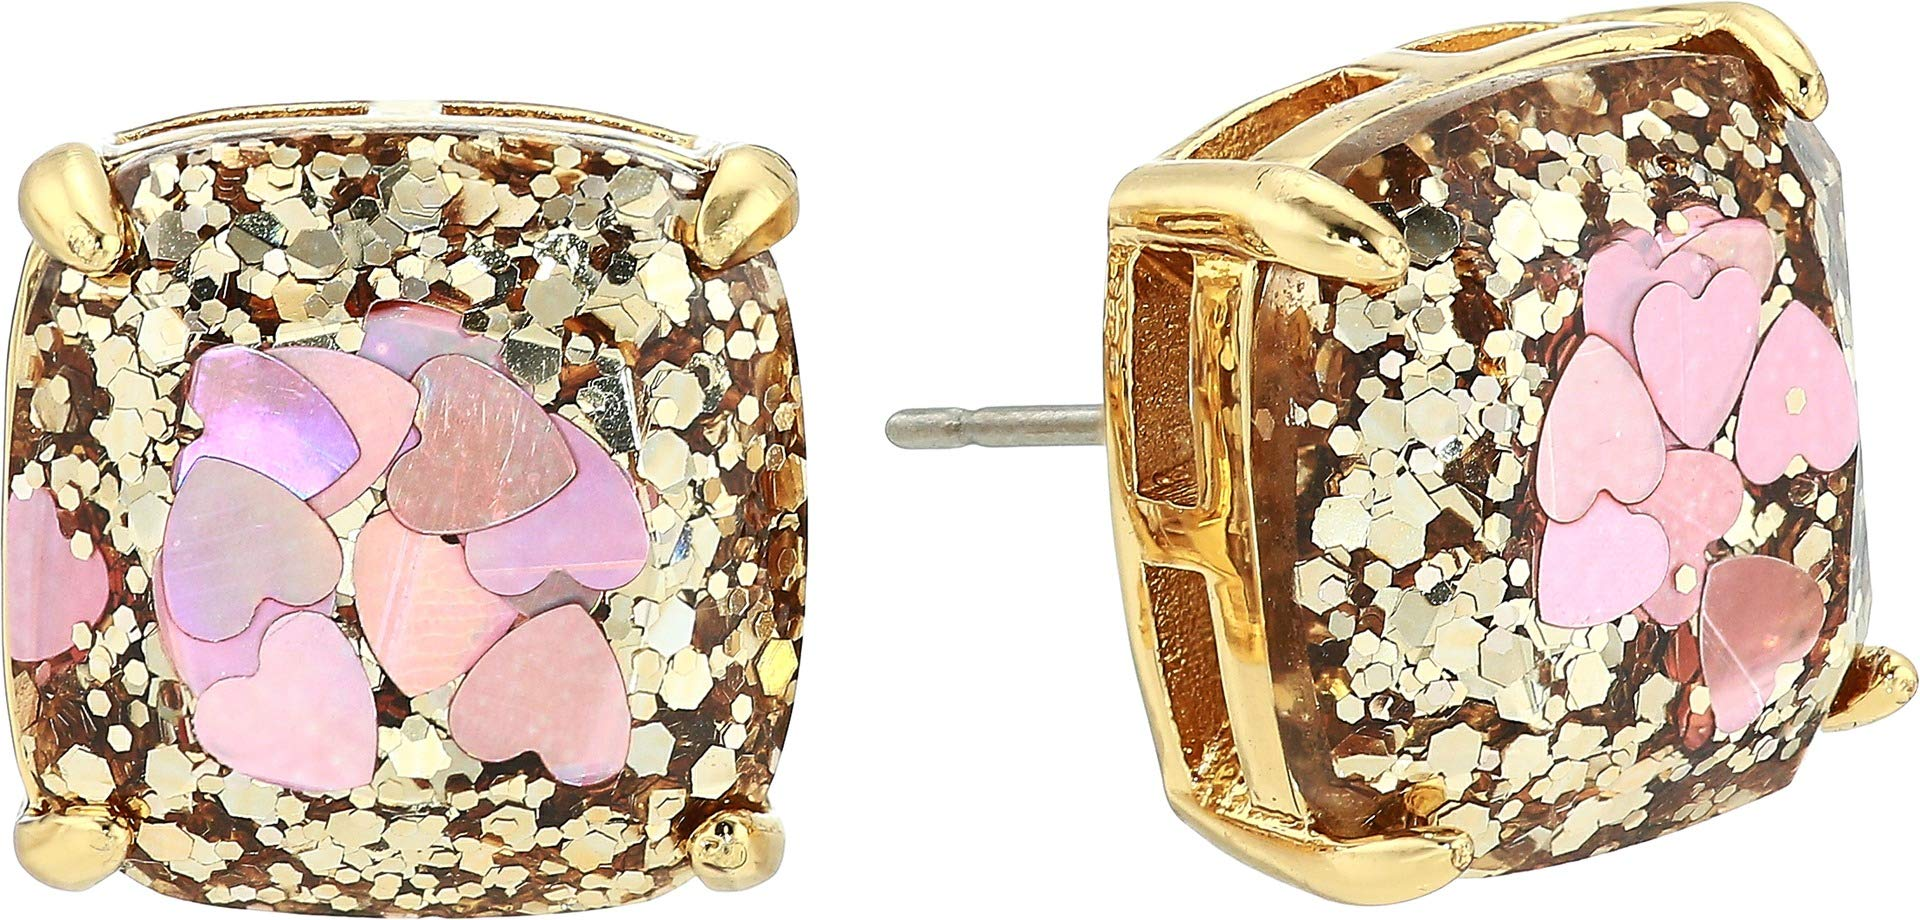 Kate Spade New York Women's Glitter Small Square Stud Earrings Blush Multi One Size by Kate Spade New York